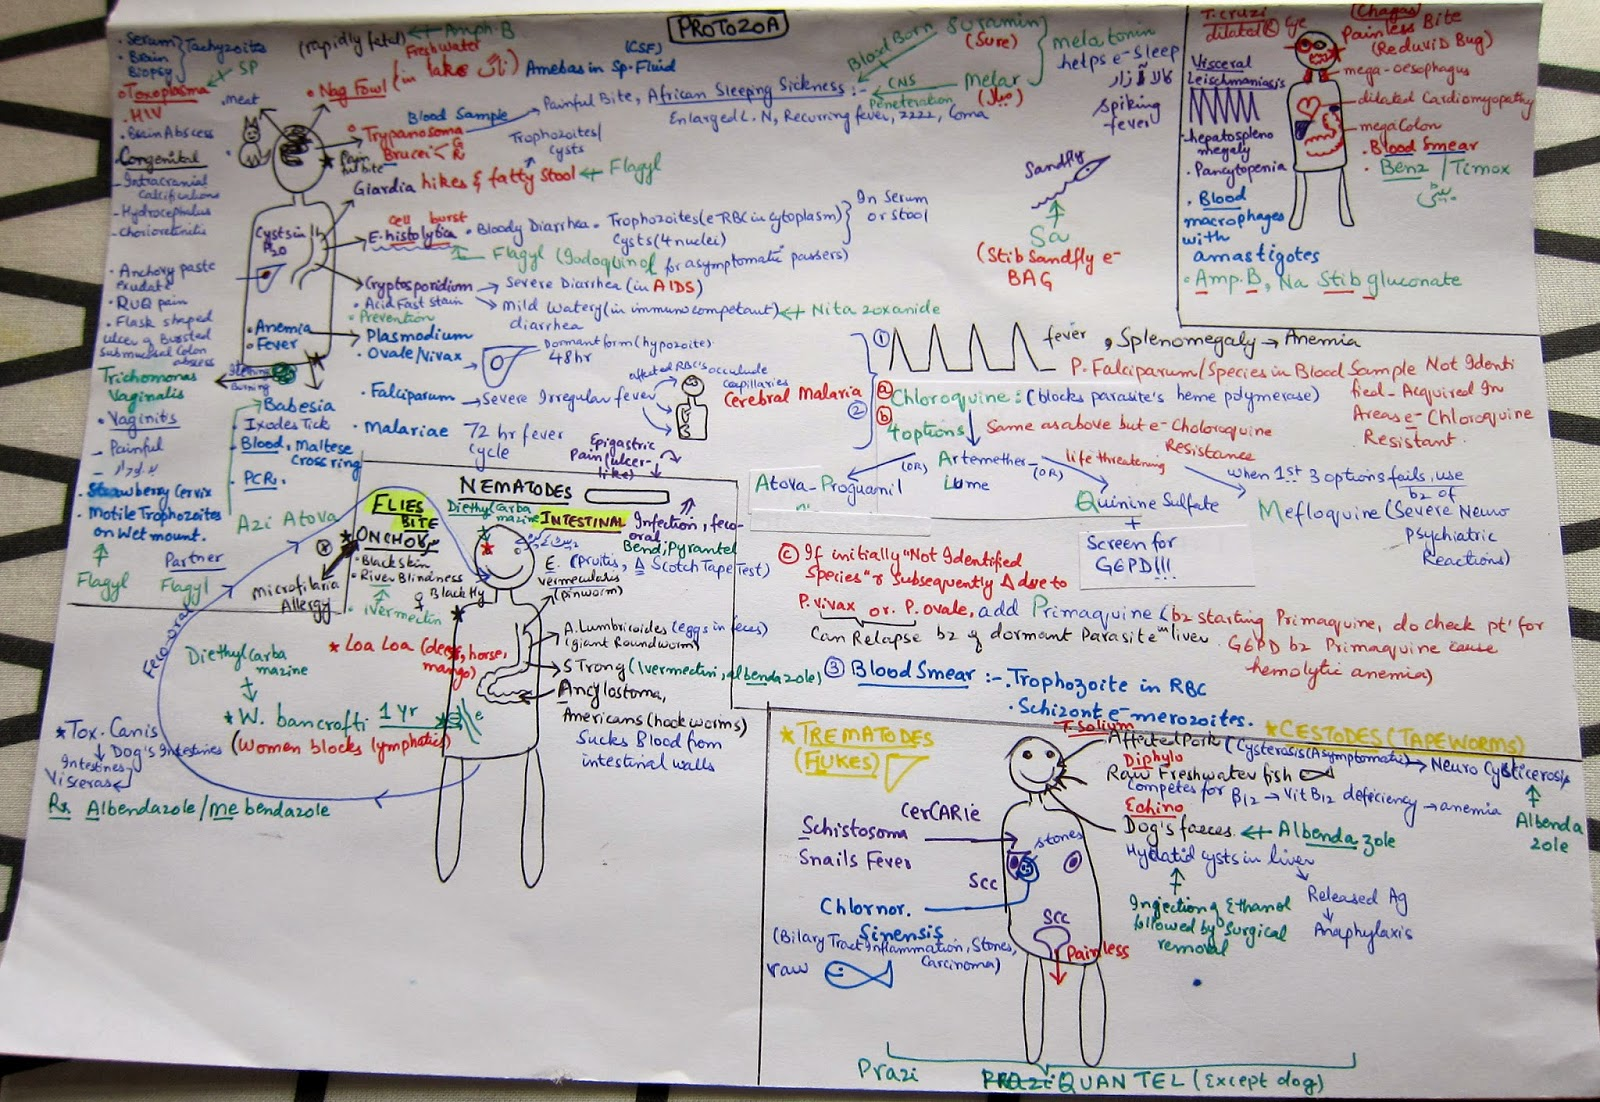 Medicowesome: Submissions: Microbiology notes